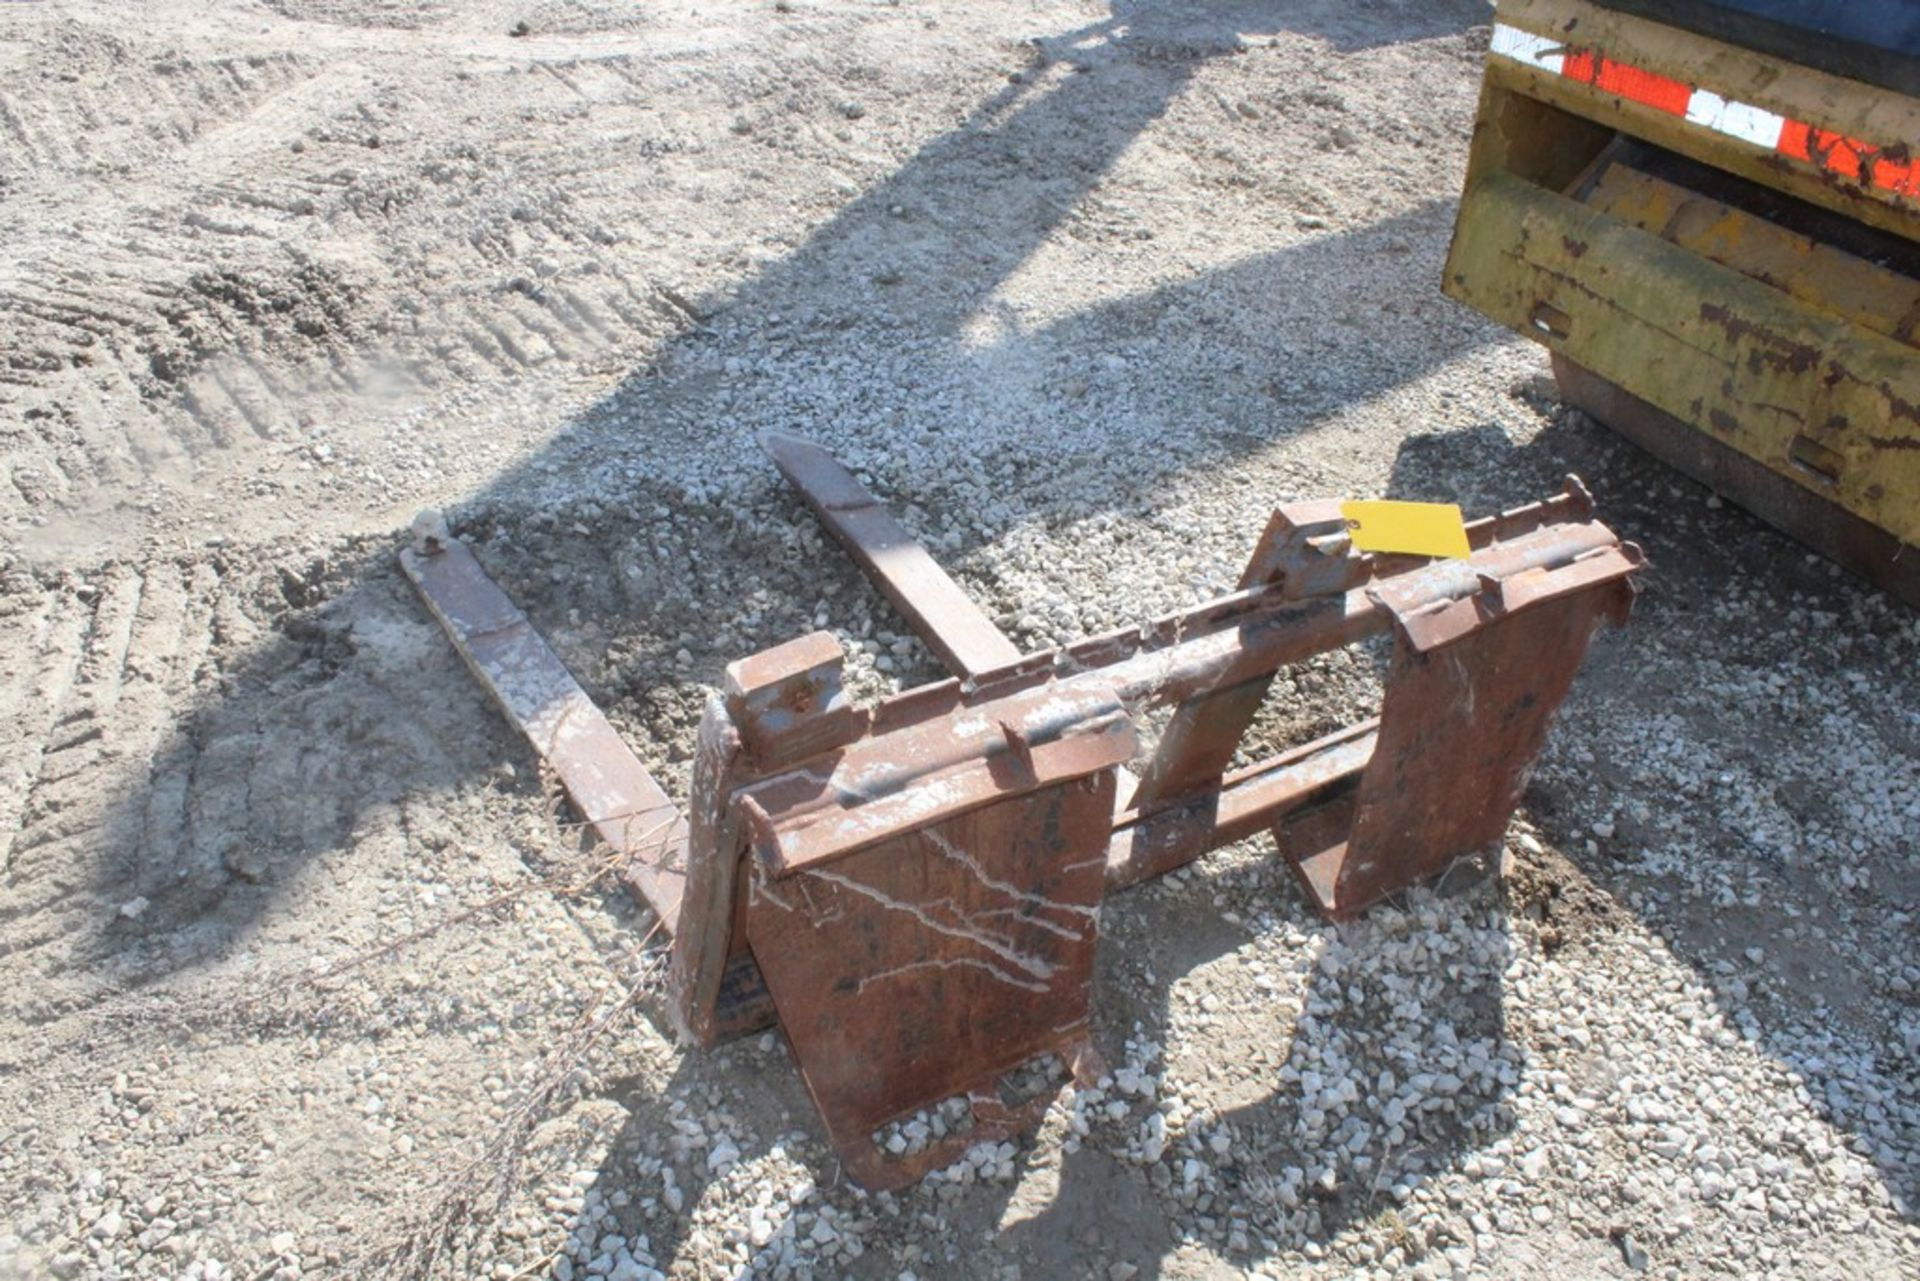 42-IN. FORK ATTACHMENT, 42-IN. FORKS, (1) BALL HITCH ON (1) FORK, TO IT SKID STEER LOADER - Image 4 of 4